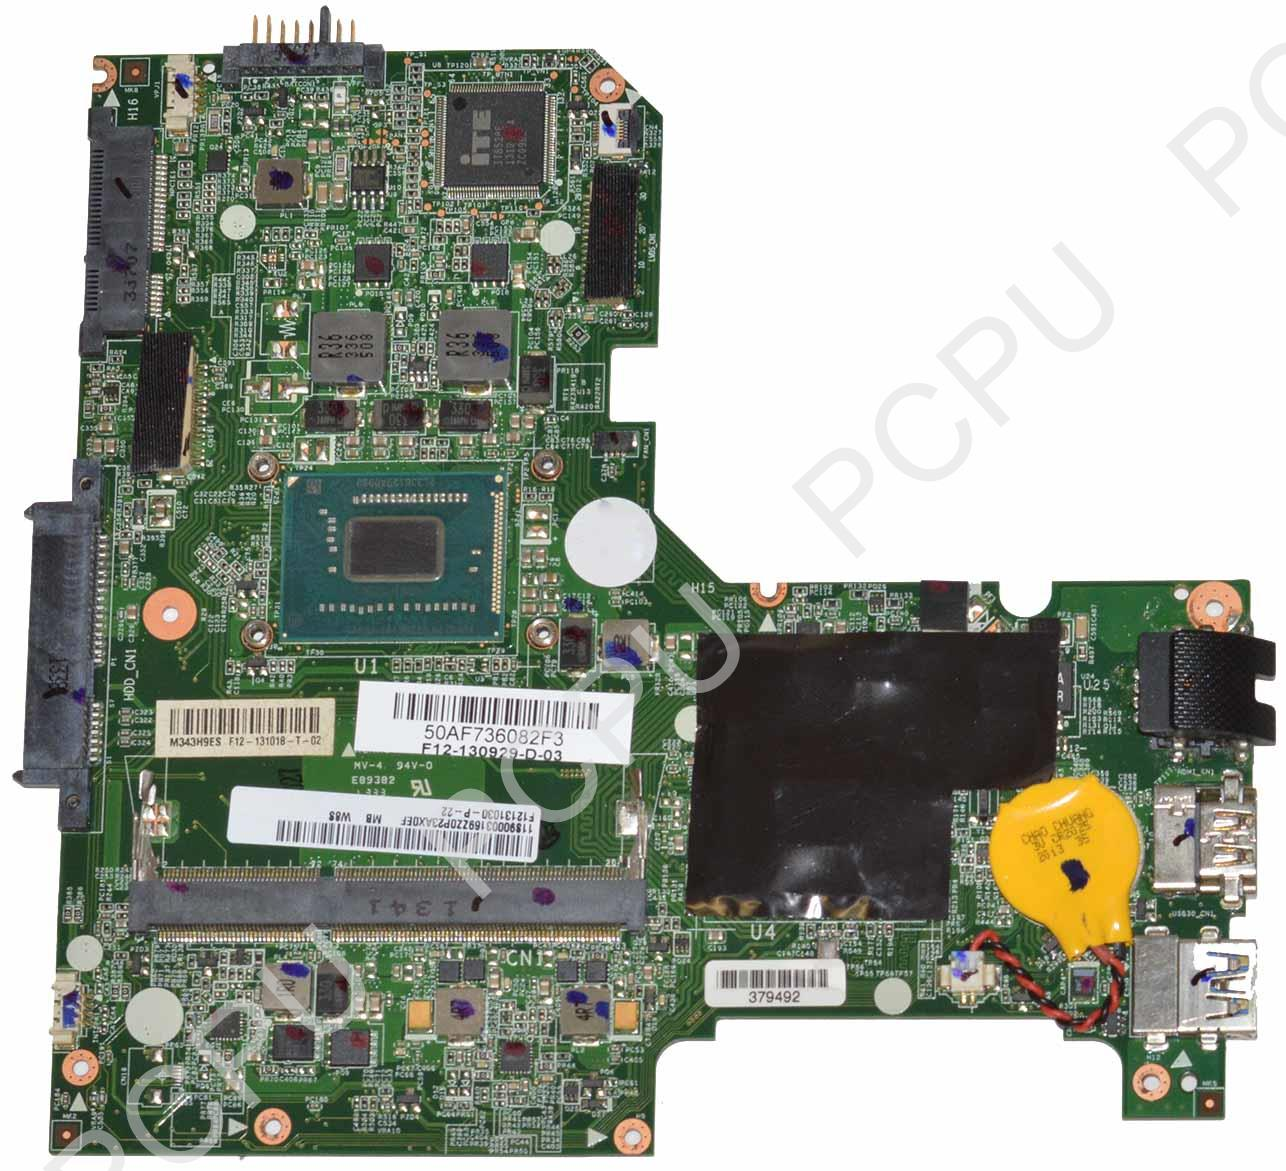 90003169 Lenovo IdeaPad S210 Touch Laptop Motherboard w/ Intel Pentium Dual-Core 2127U 1.9GHz CPU